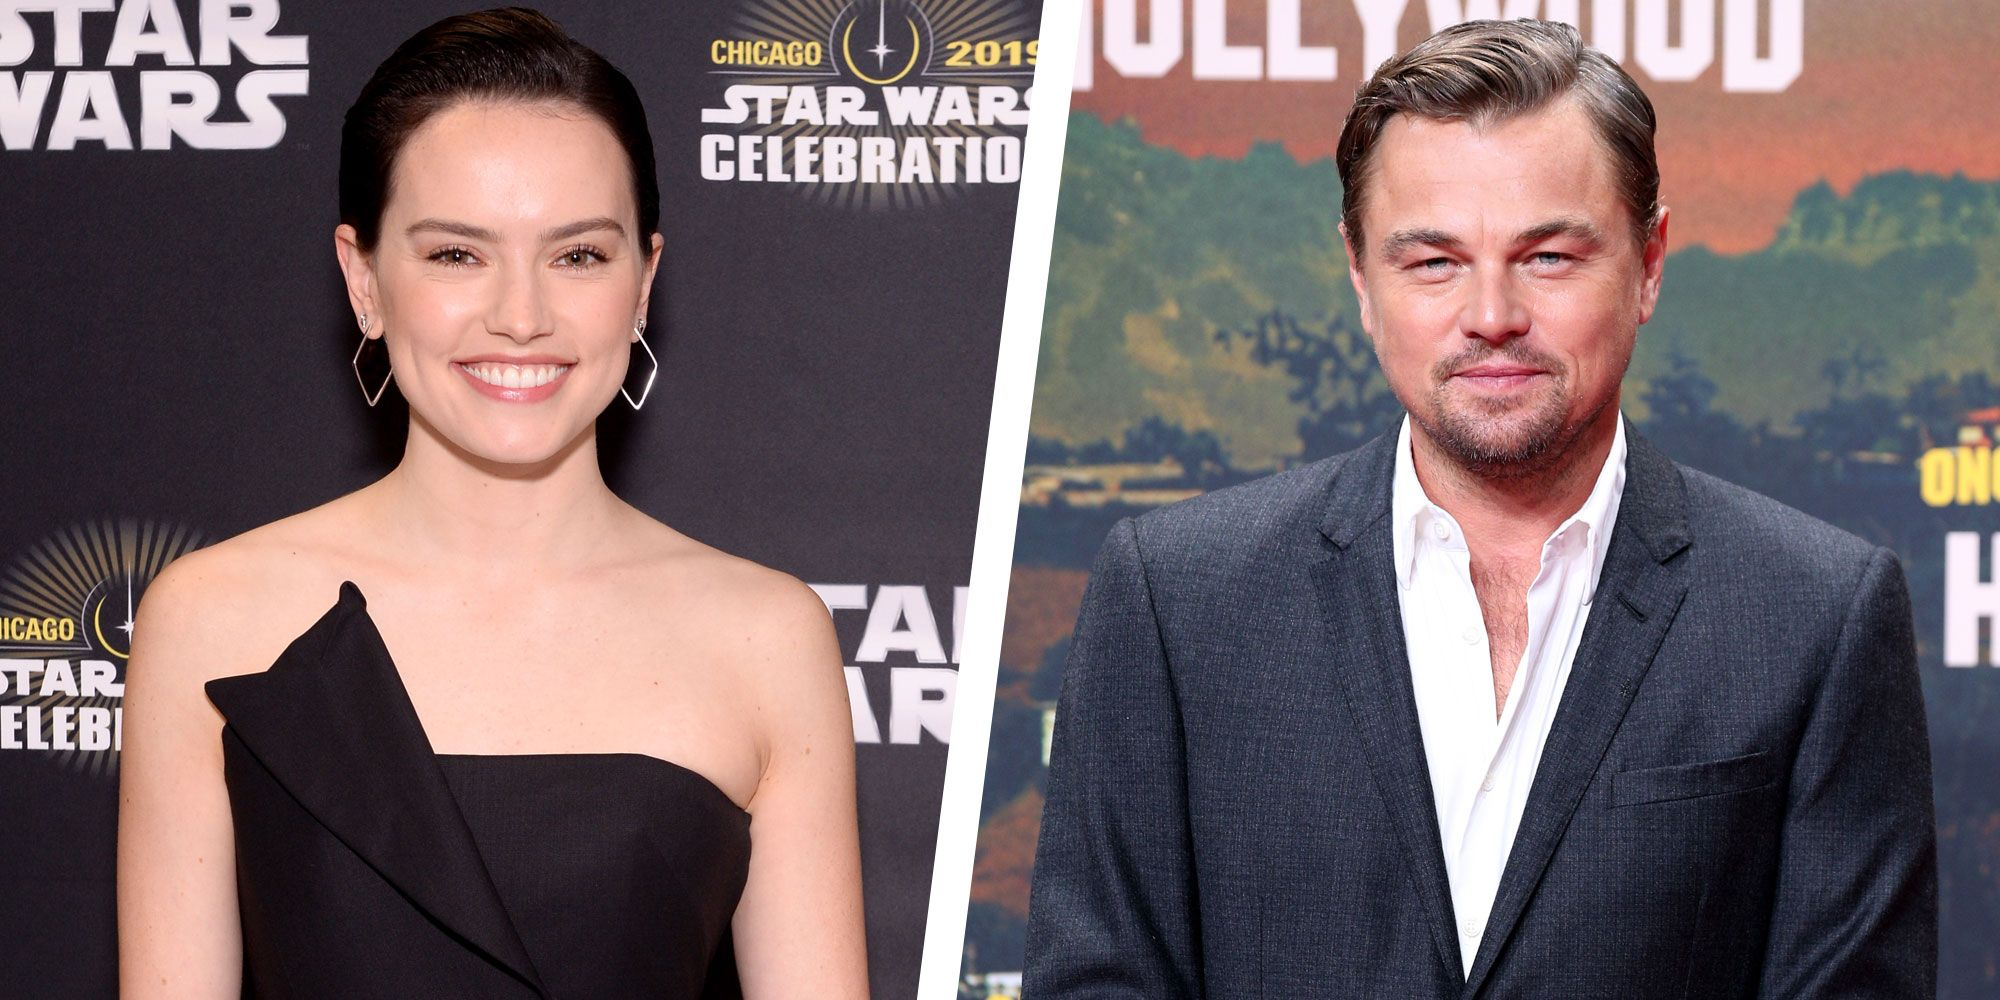 Daisy Ridley Boldly Claims Leonardo DiCaprio Is 'Not Hot'